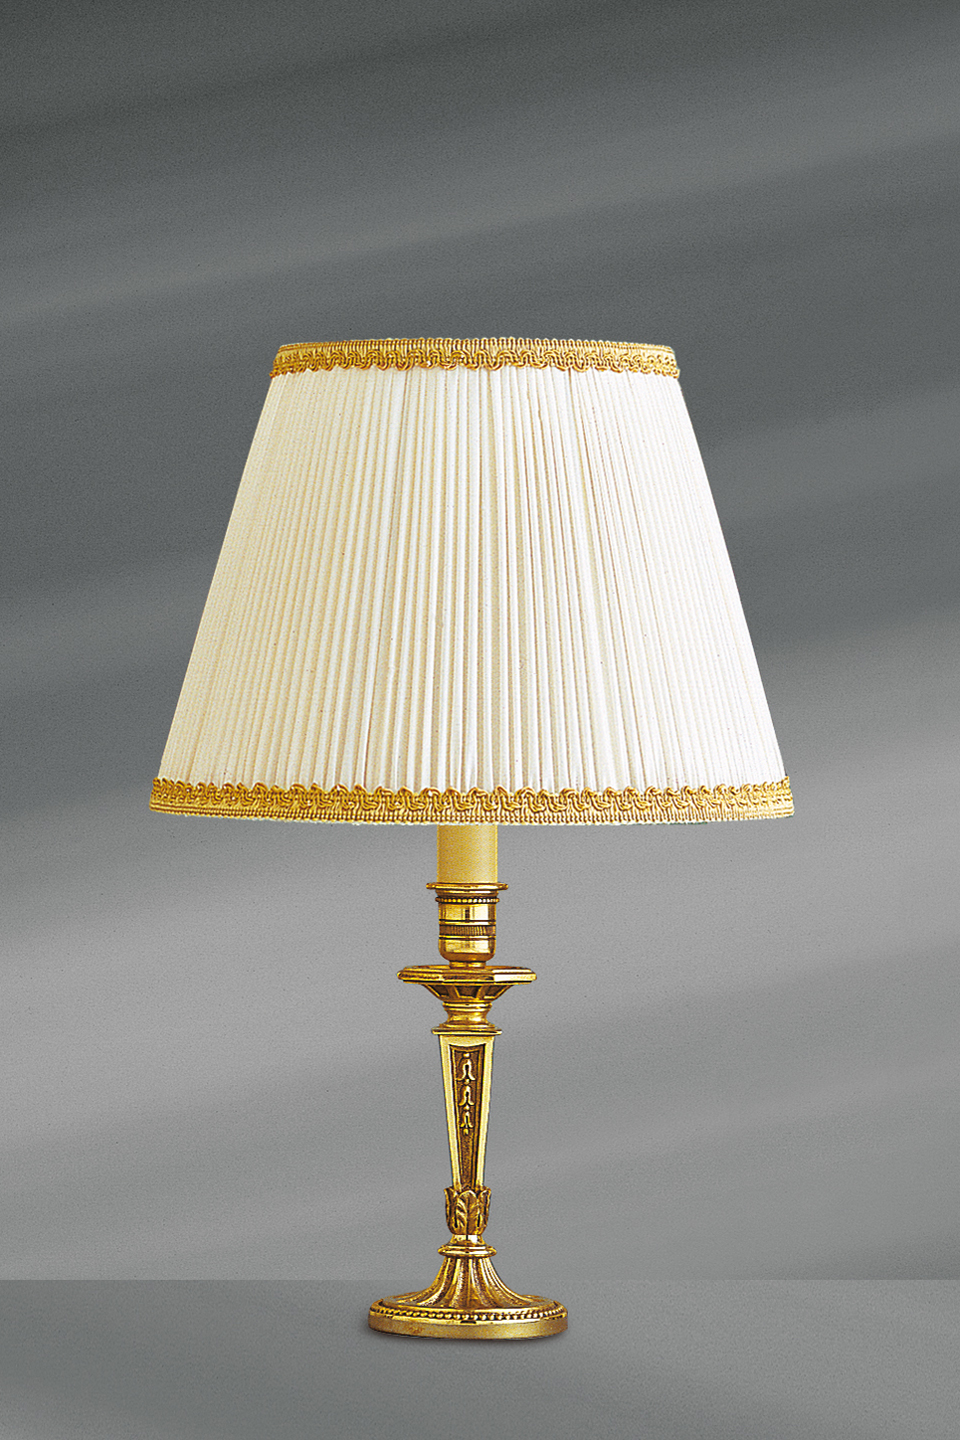 Lampe Gold One Light Lamp Bronze Finish Old Gold Geometric Decoration Pleated And Braided Lampshade